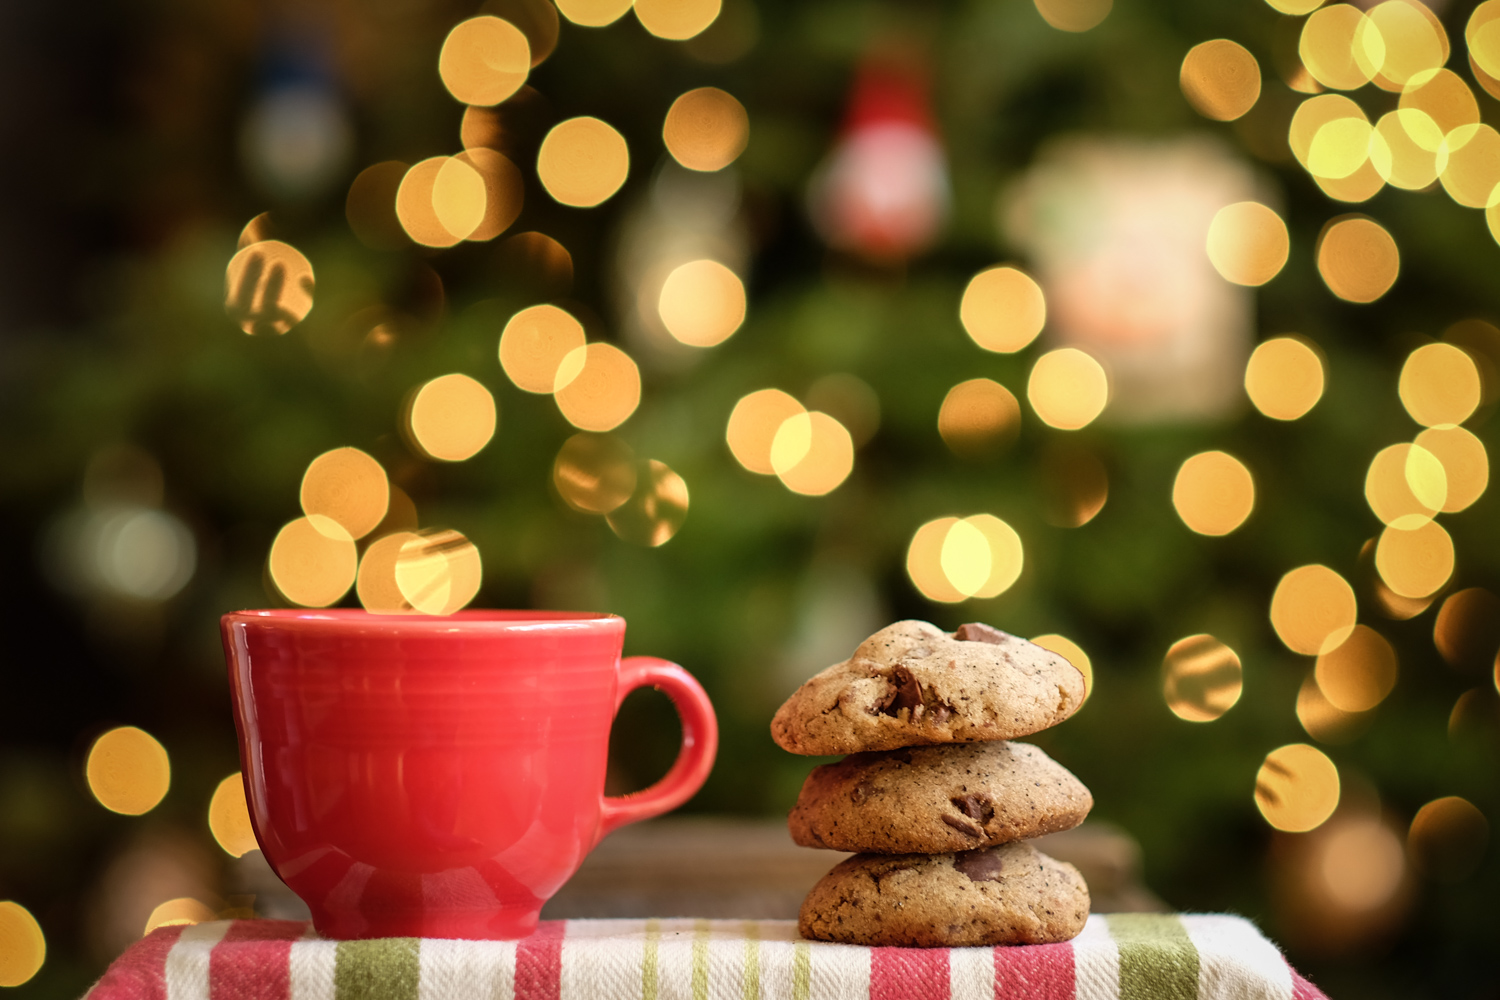 11 - How to Take Great Food Photos this Holiday Season